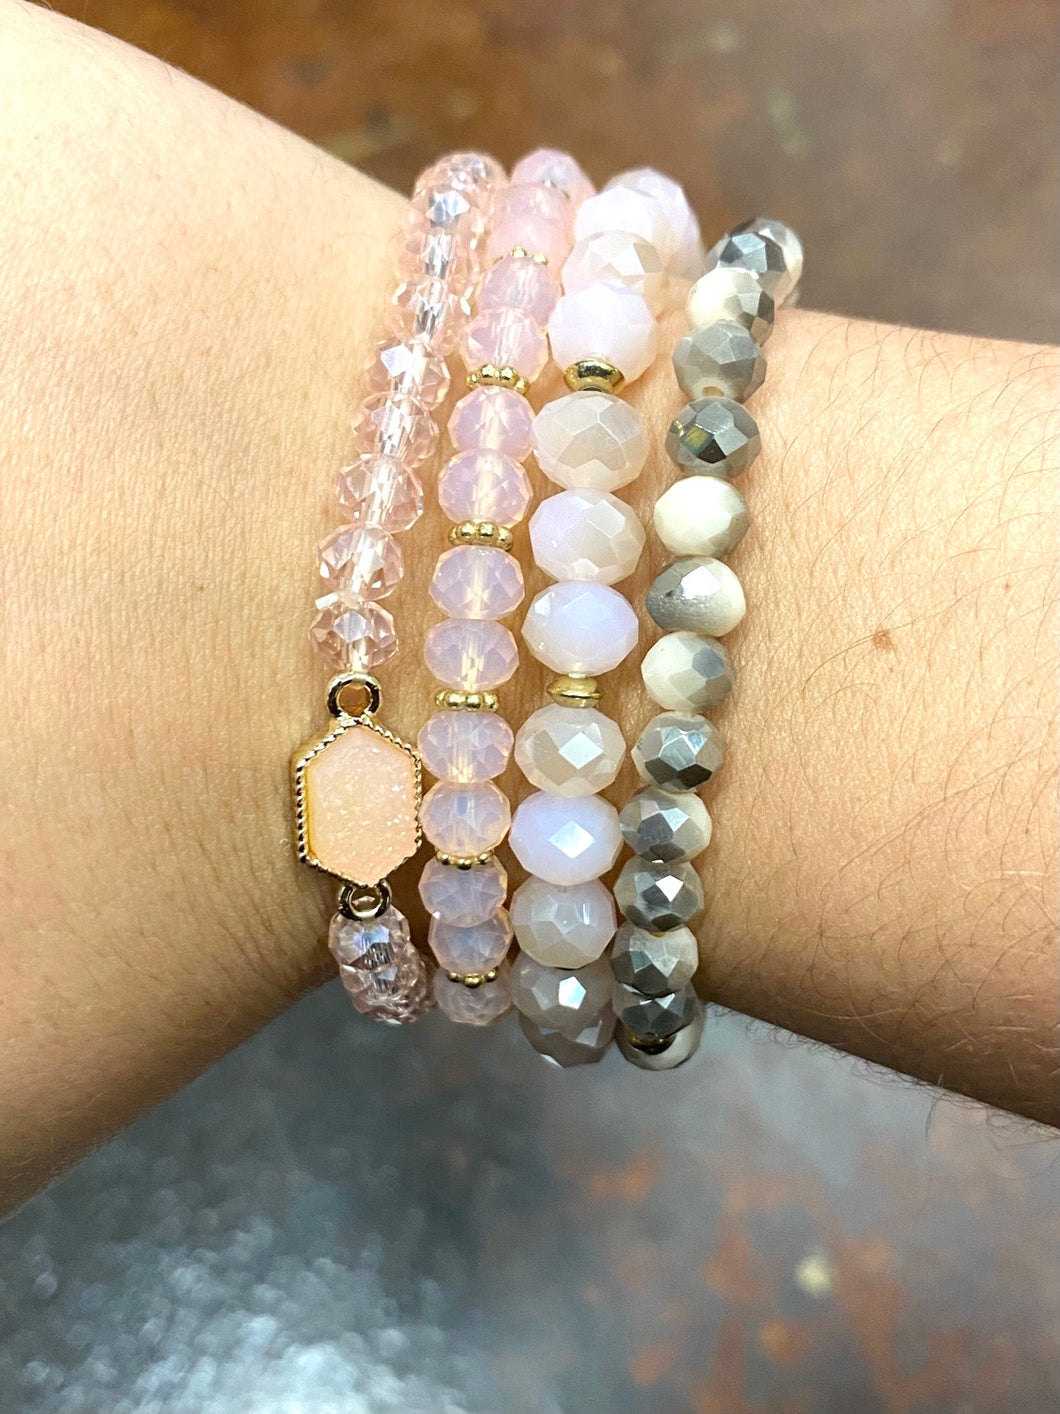 Classy Calm Chic Stack - Pink